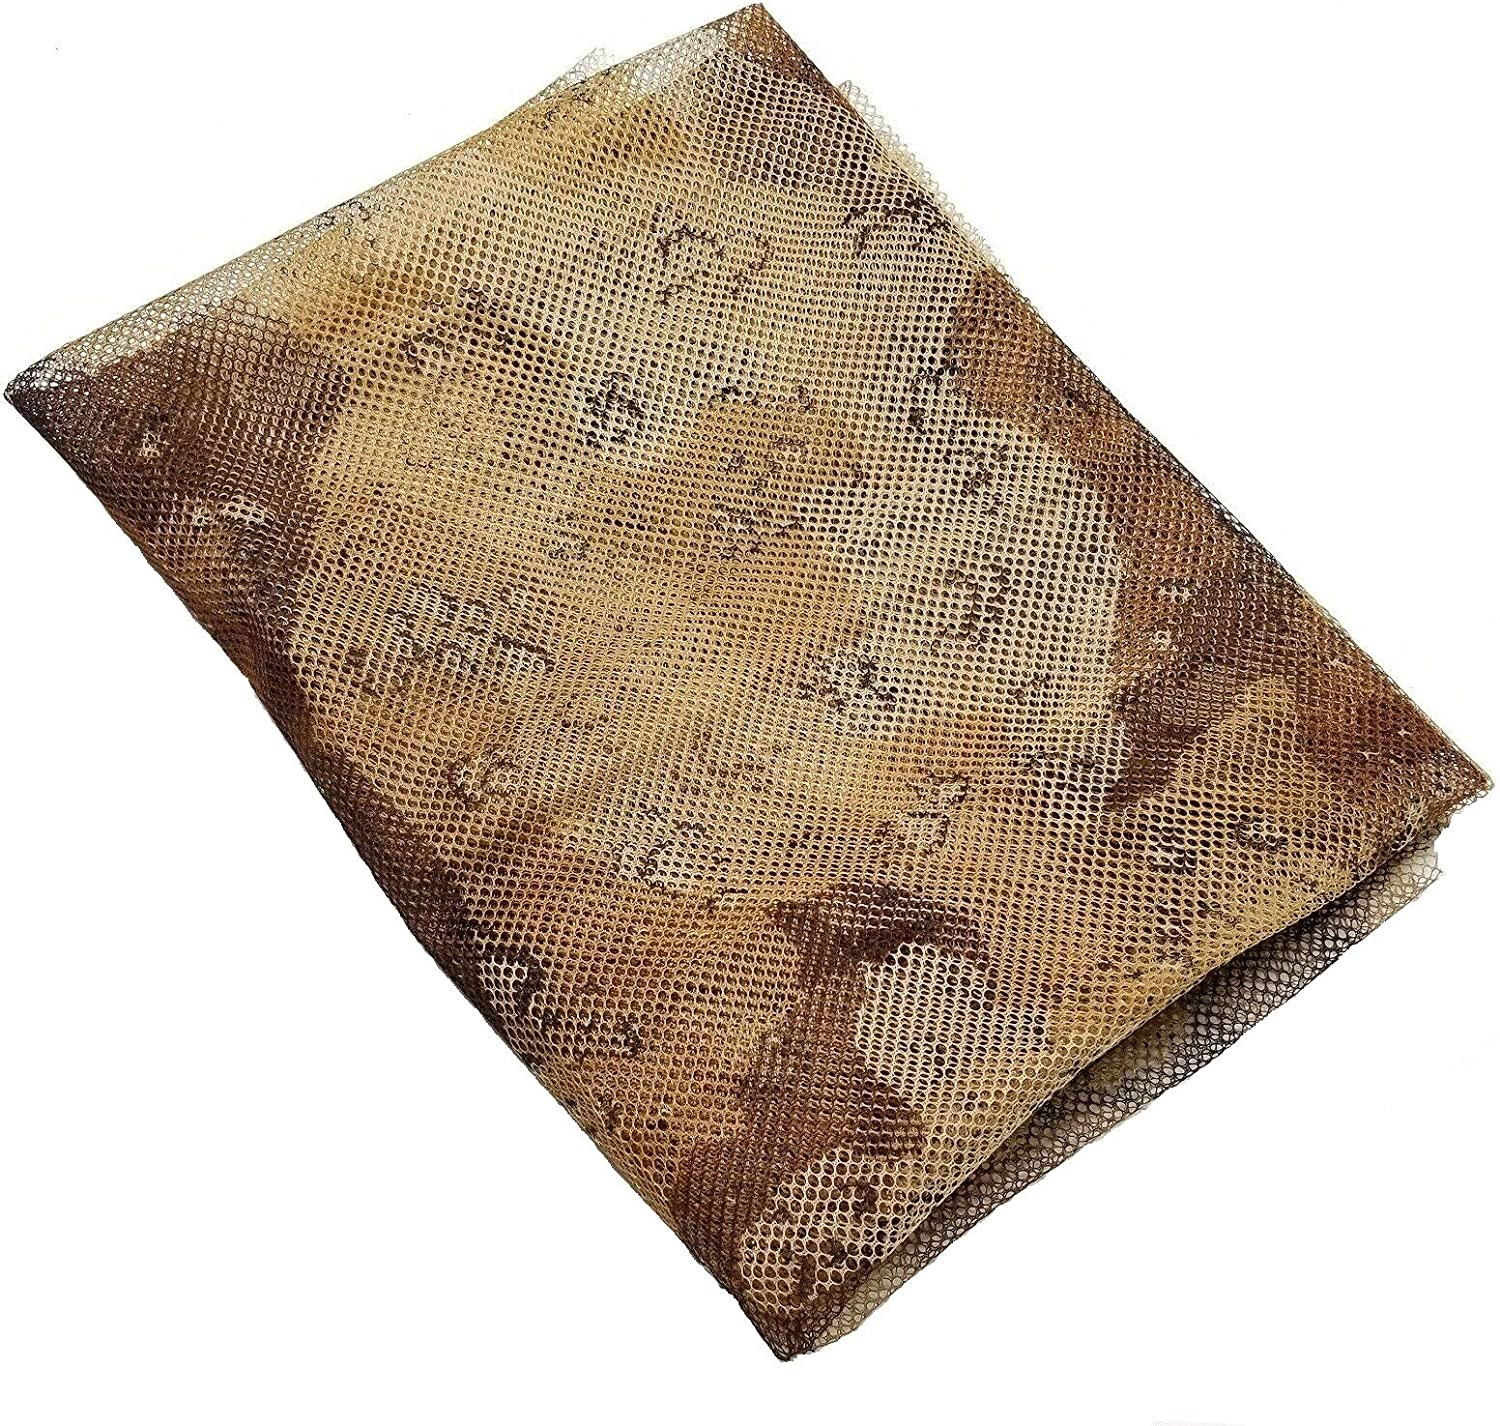 Desert Camouflage Military Net Camo Netting Hunting Camping Tent Cover ND